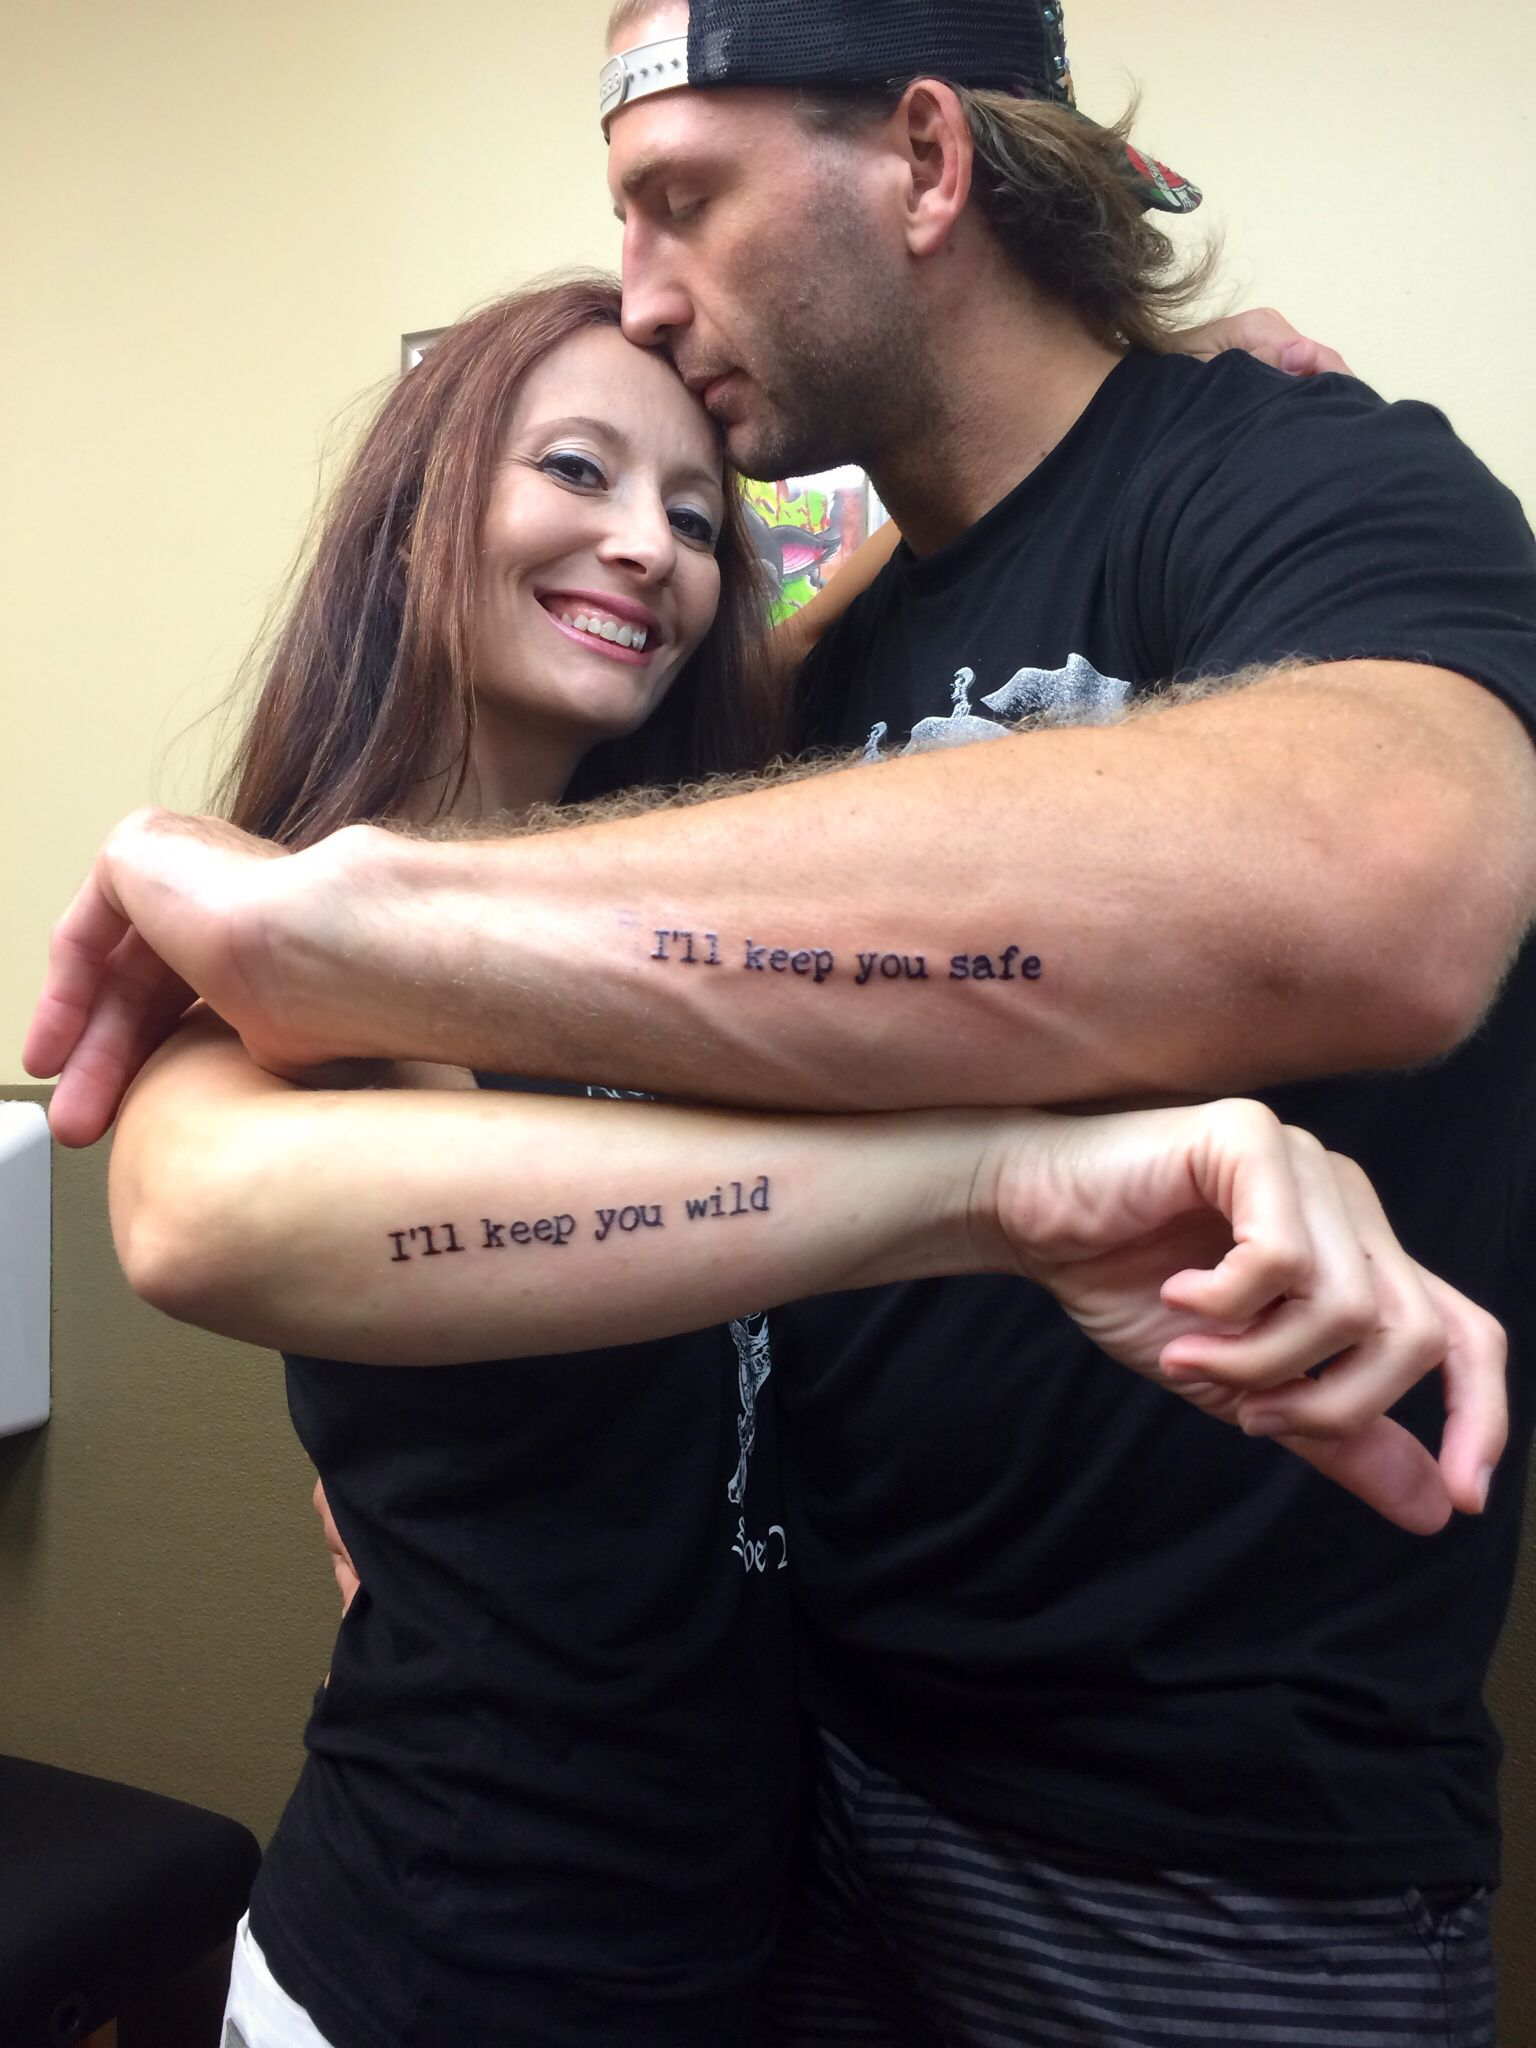 Tattoos For Couples Matching Couple Tattoos Couple Tattoos Unique Meaningful Tattoos For Couples